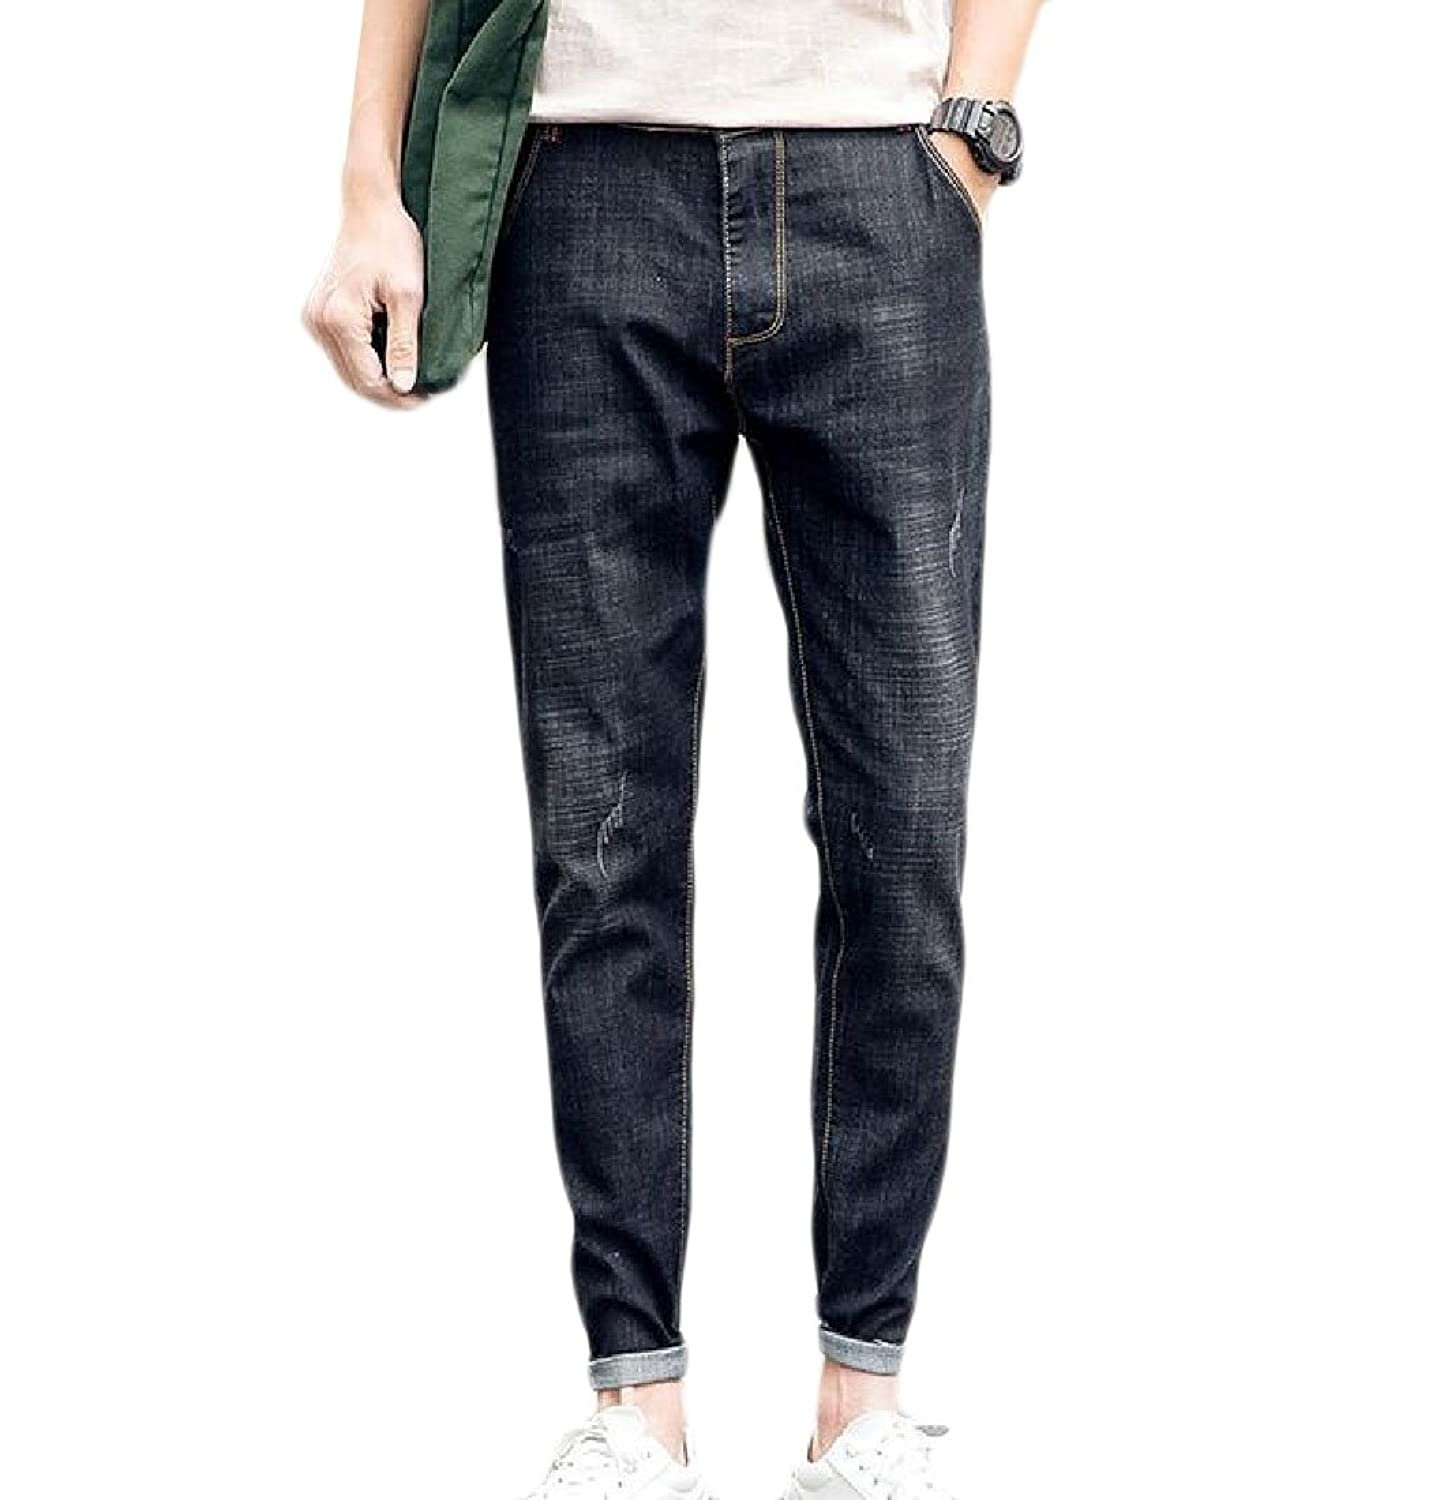 XiaoTianXin-men clothes XTX Men Skinny Stretchy Ripped Hole Distressed Classic Jeans Long Pants